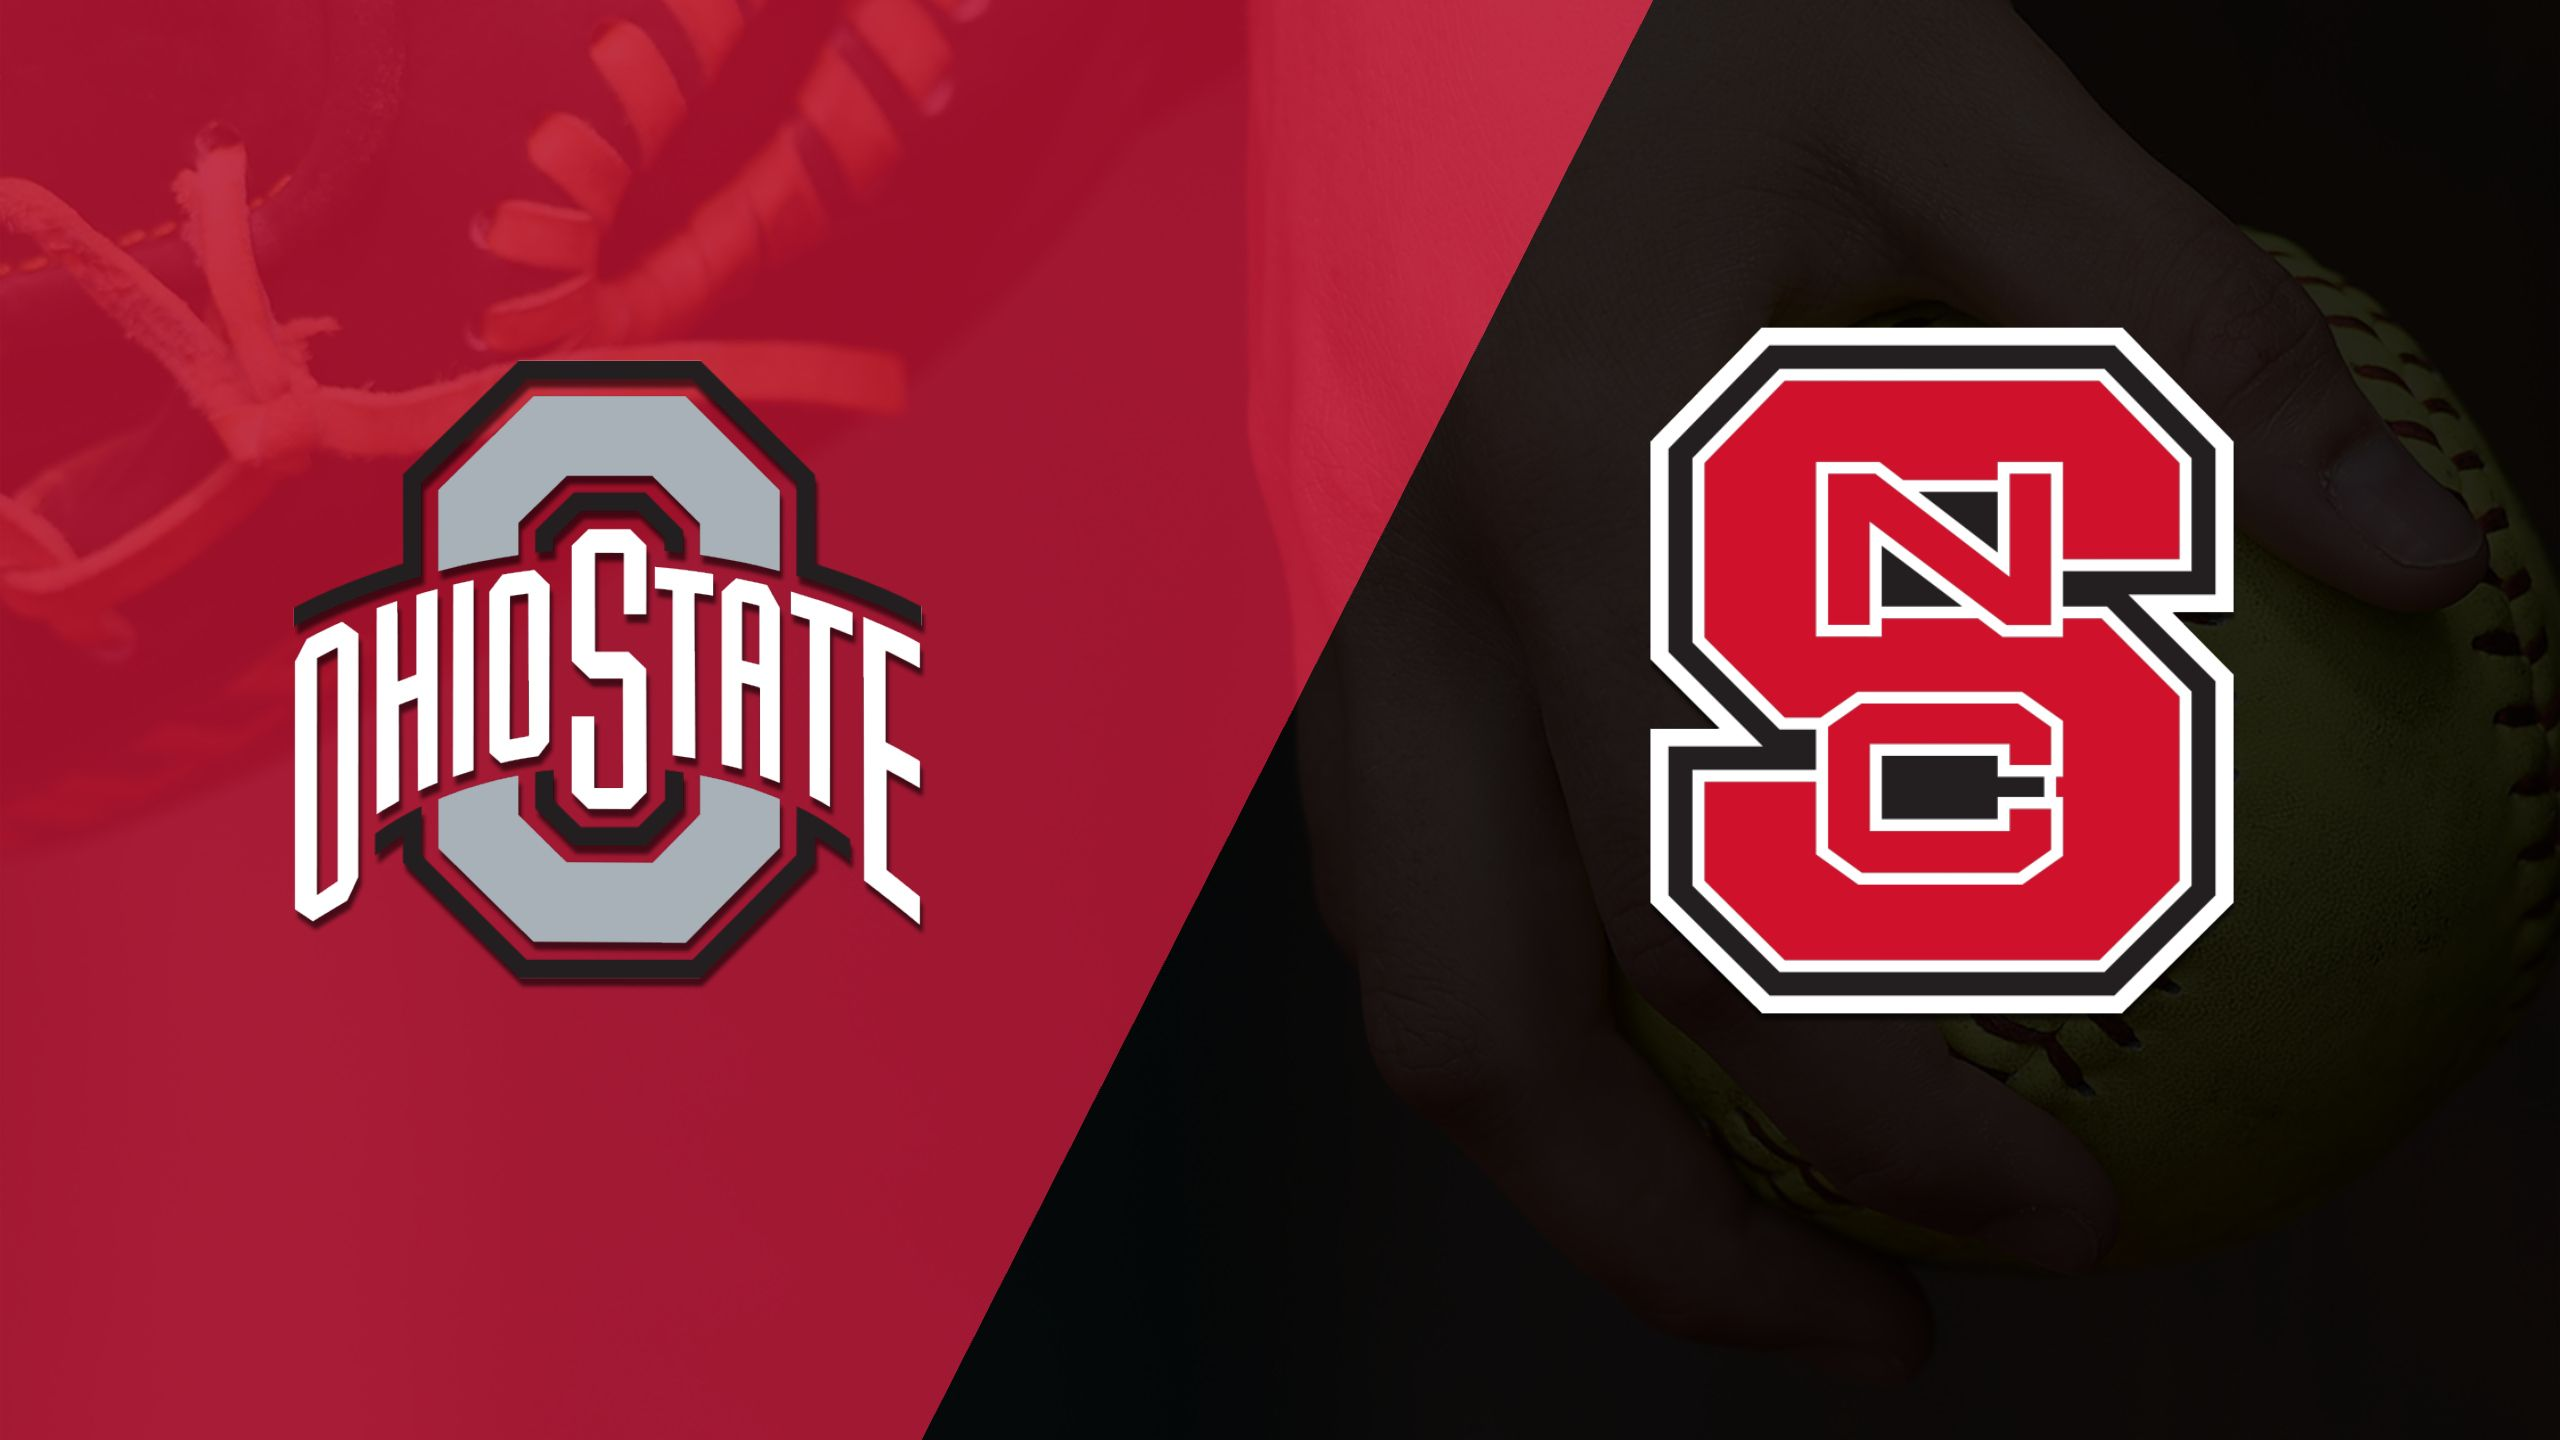 #21 Ohio State vs. NC State (Softball)